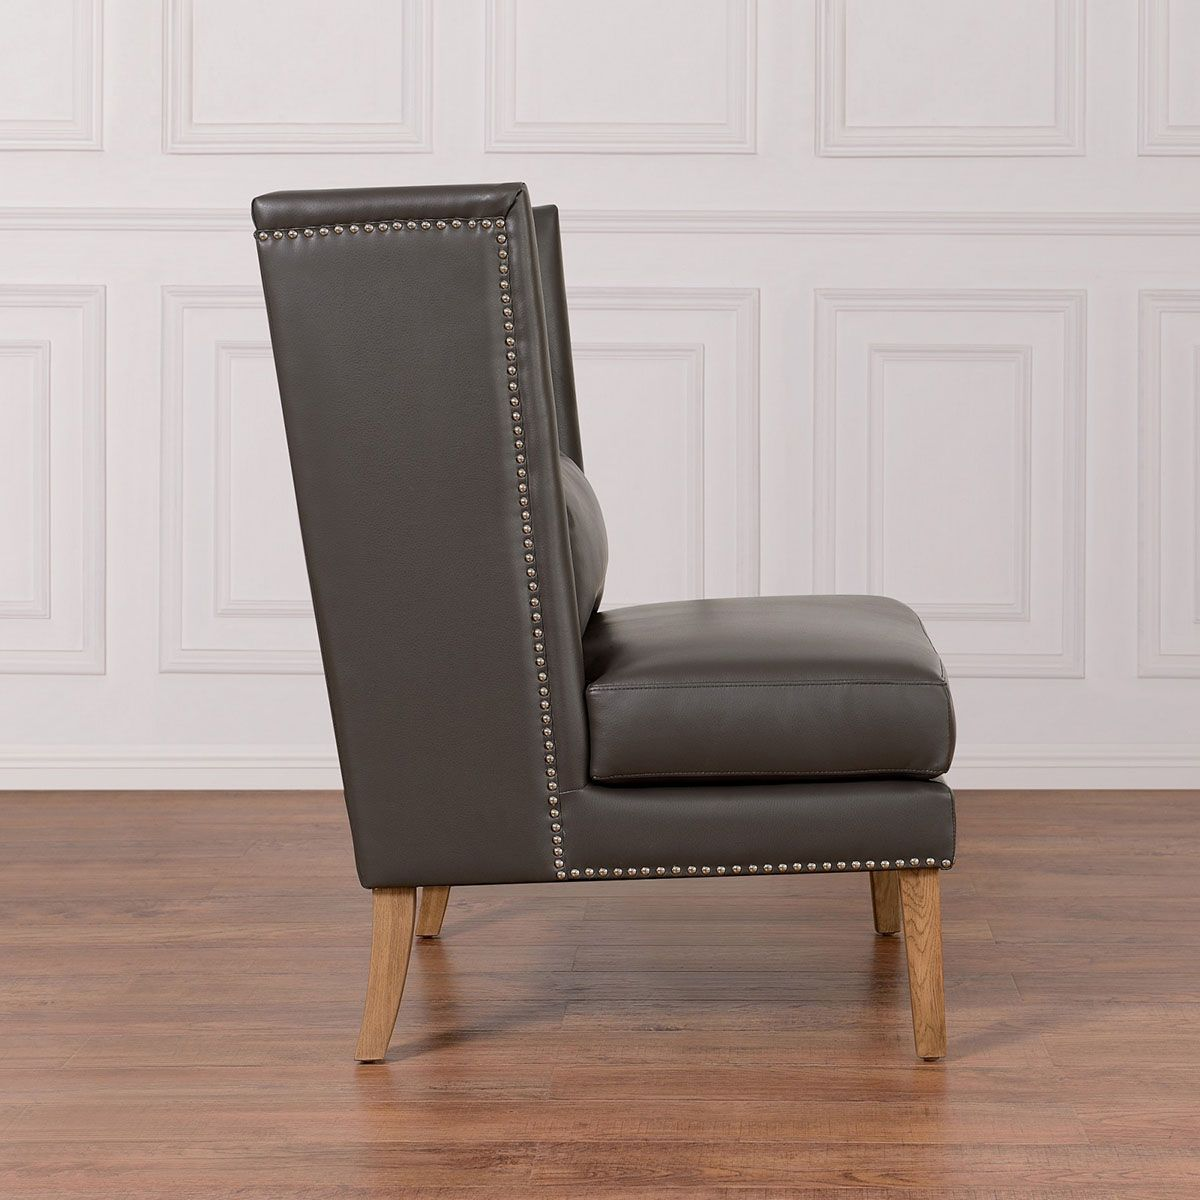 TOV Furniture Chelsea Grey Leather Wing Chair TOV CHE GBL